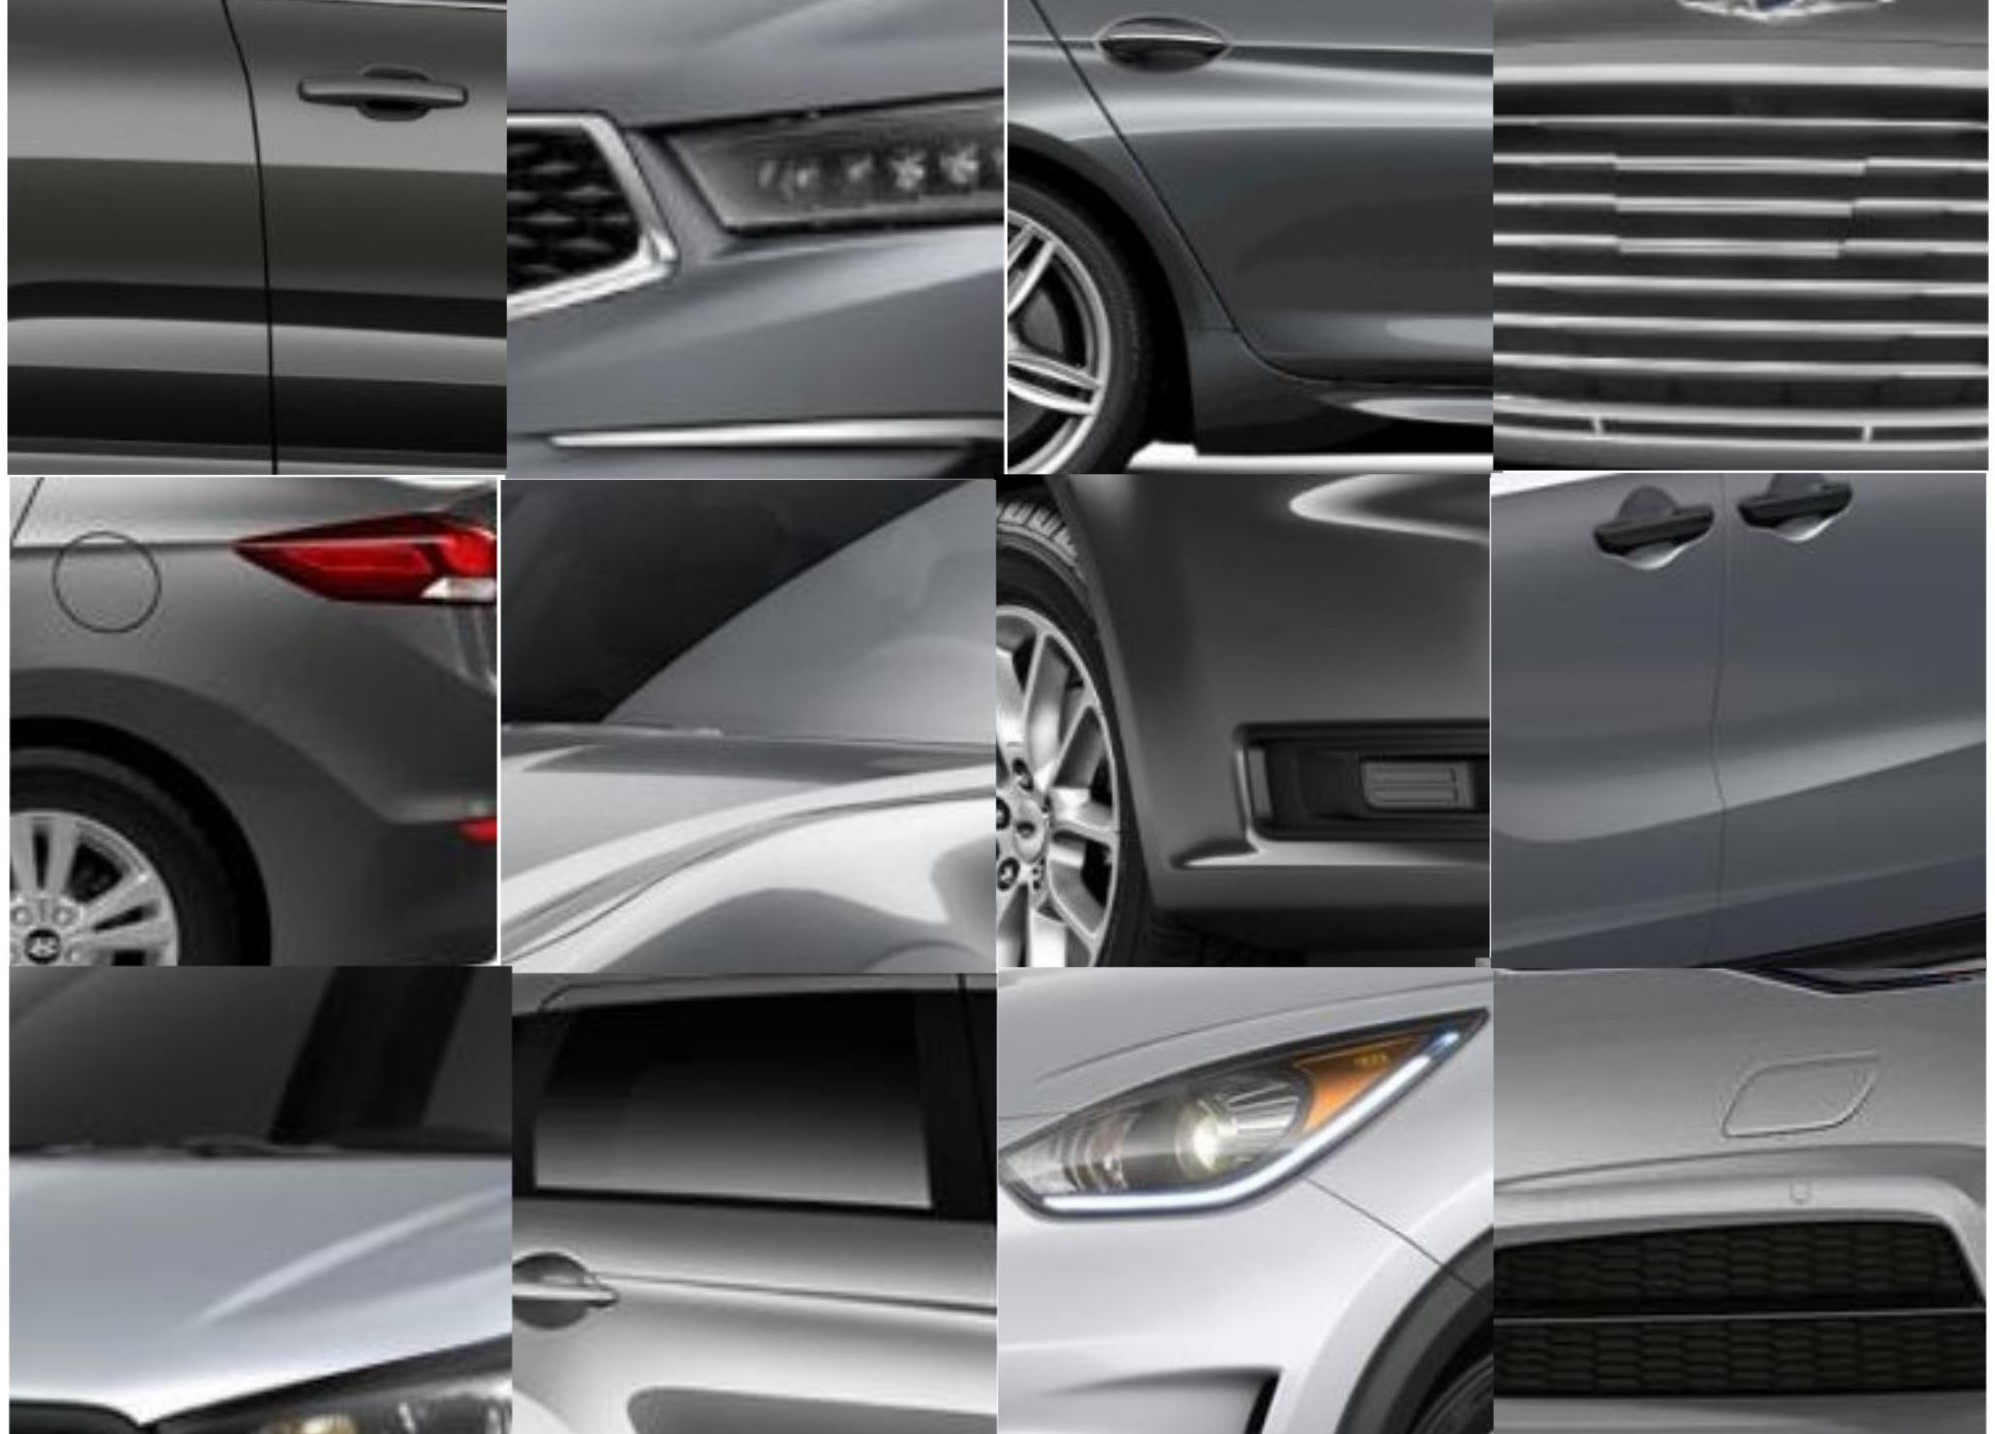 Shades Of Grey Cars Silver Gray Metallic Body Color Vehicles